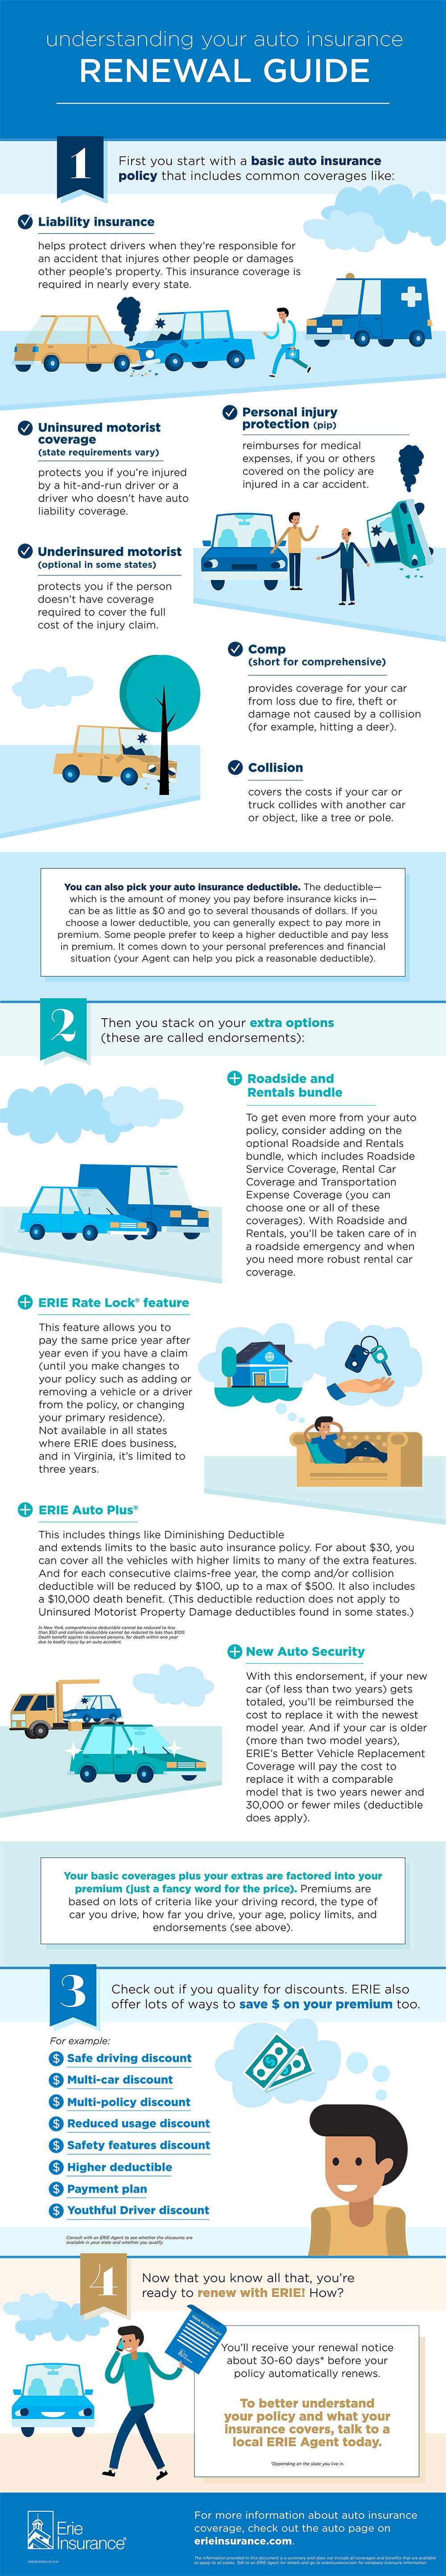 Infographic: Understanding Your Auto Insurance (Renewal Guide) Infographic